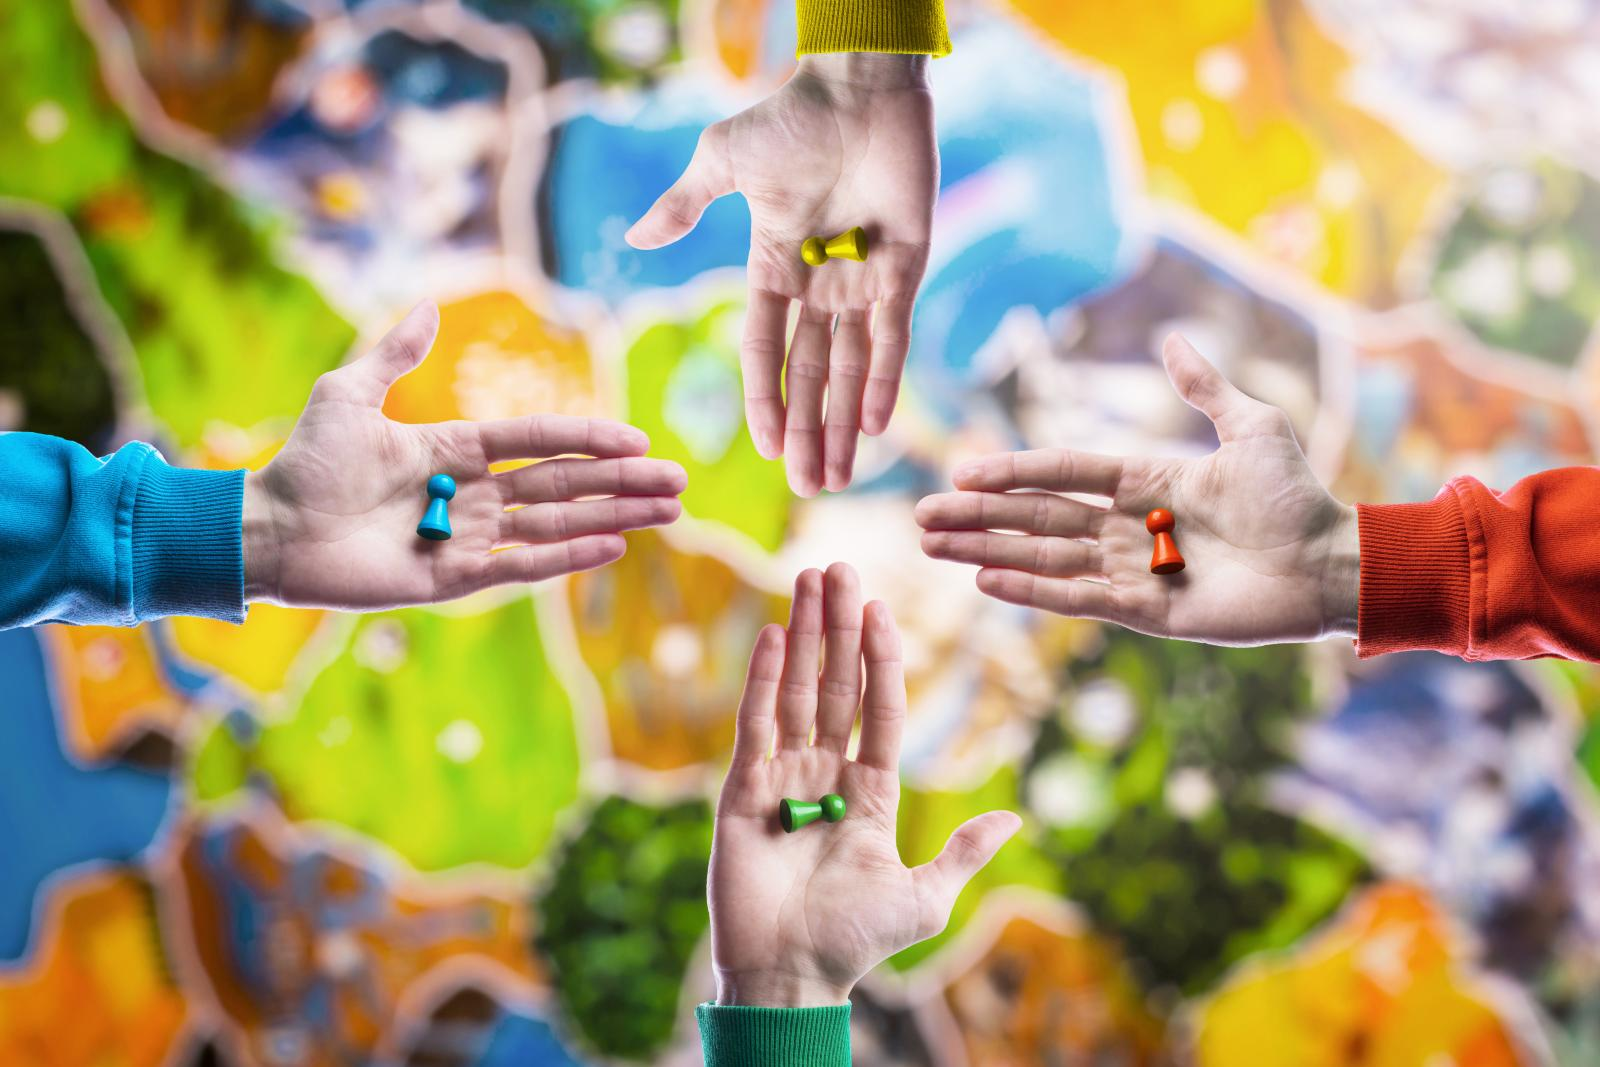 People holding in hand colourful playing figures on blurred board game field background